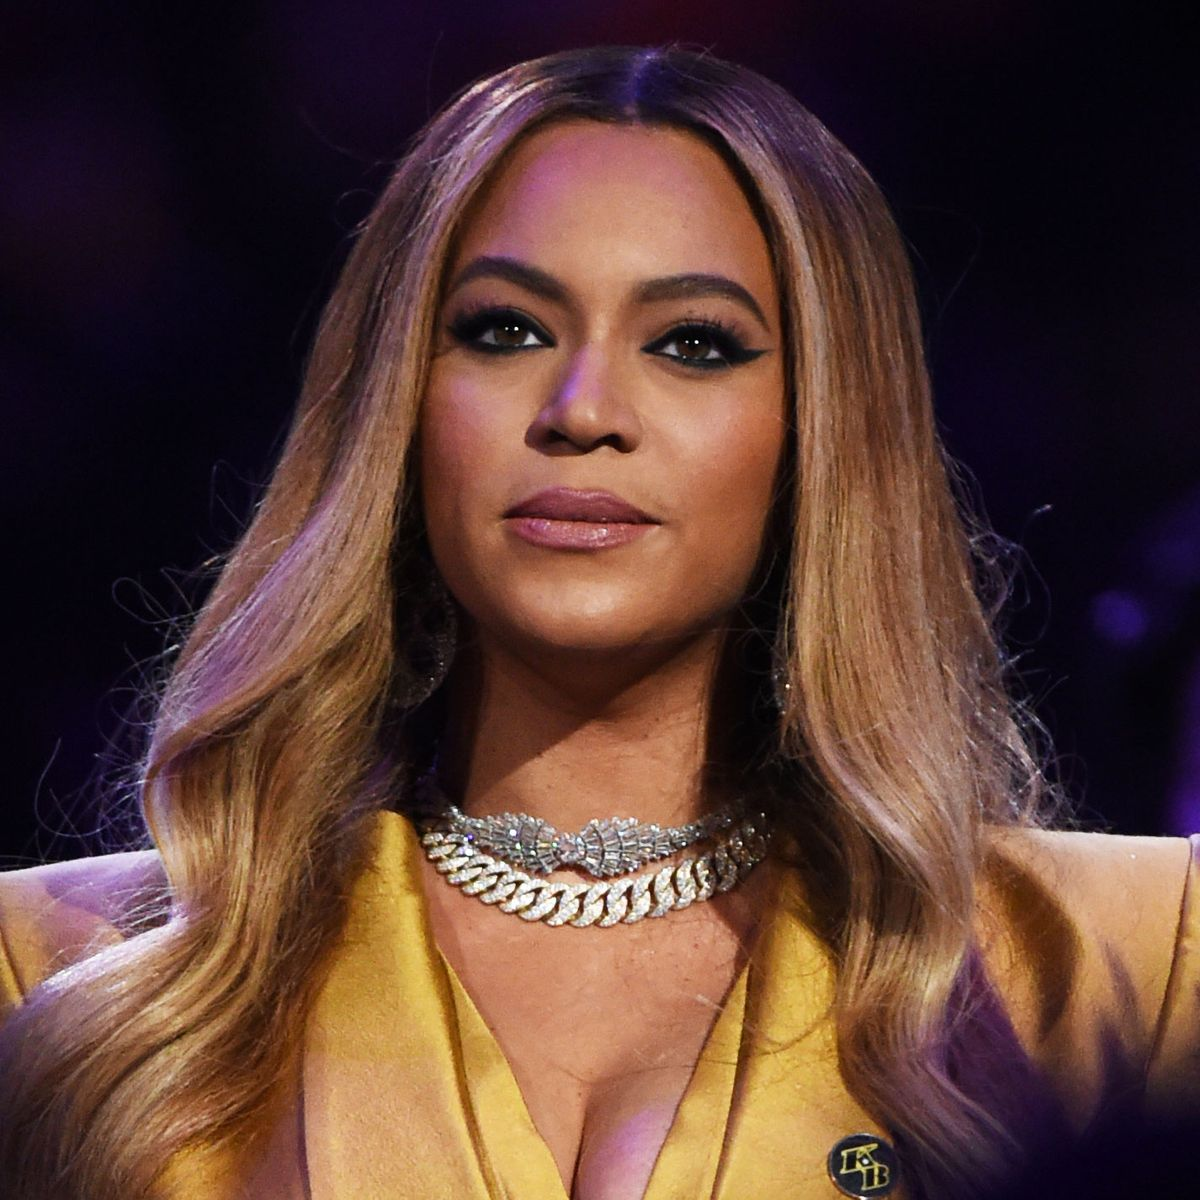 Beyonce Turning 40 Made Her Understand To Be Alive And Live In The Moment!